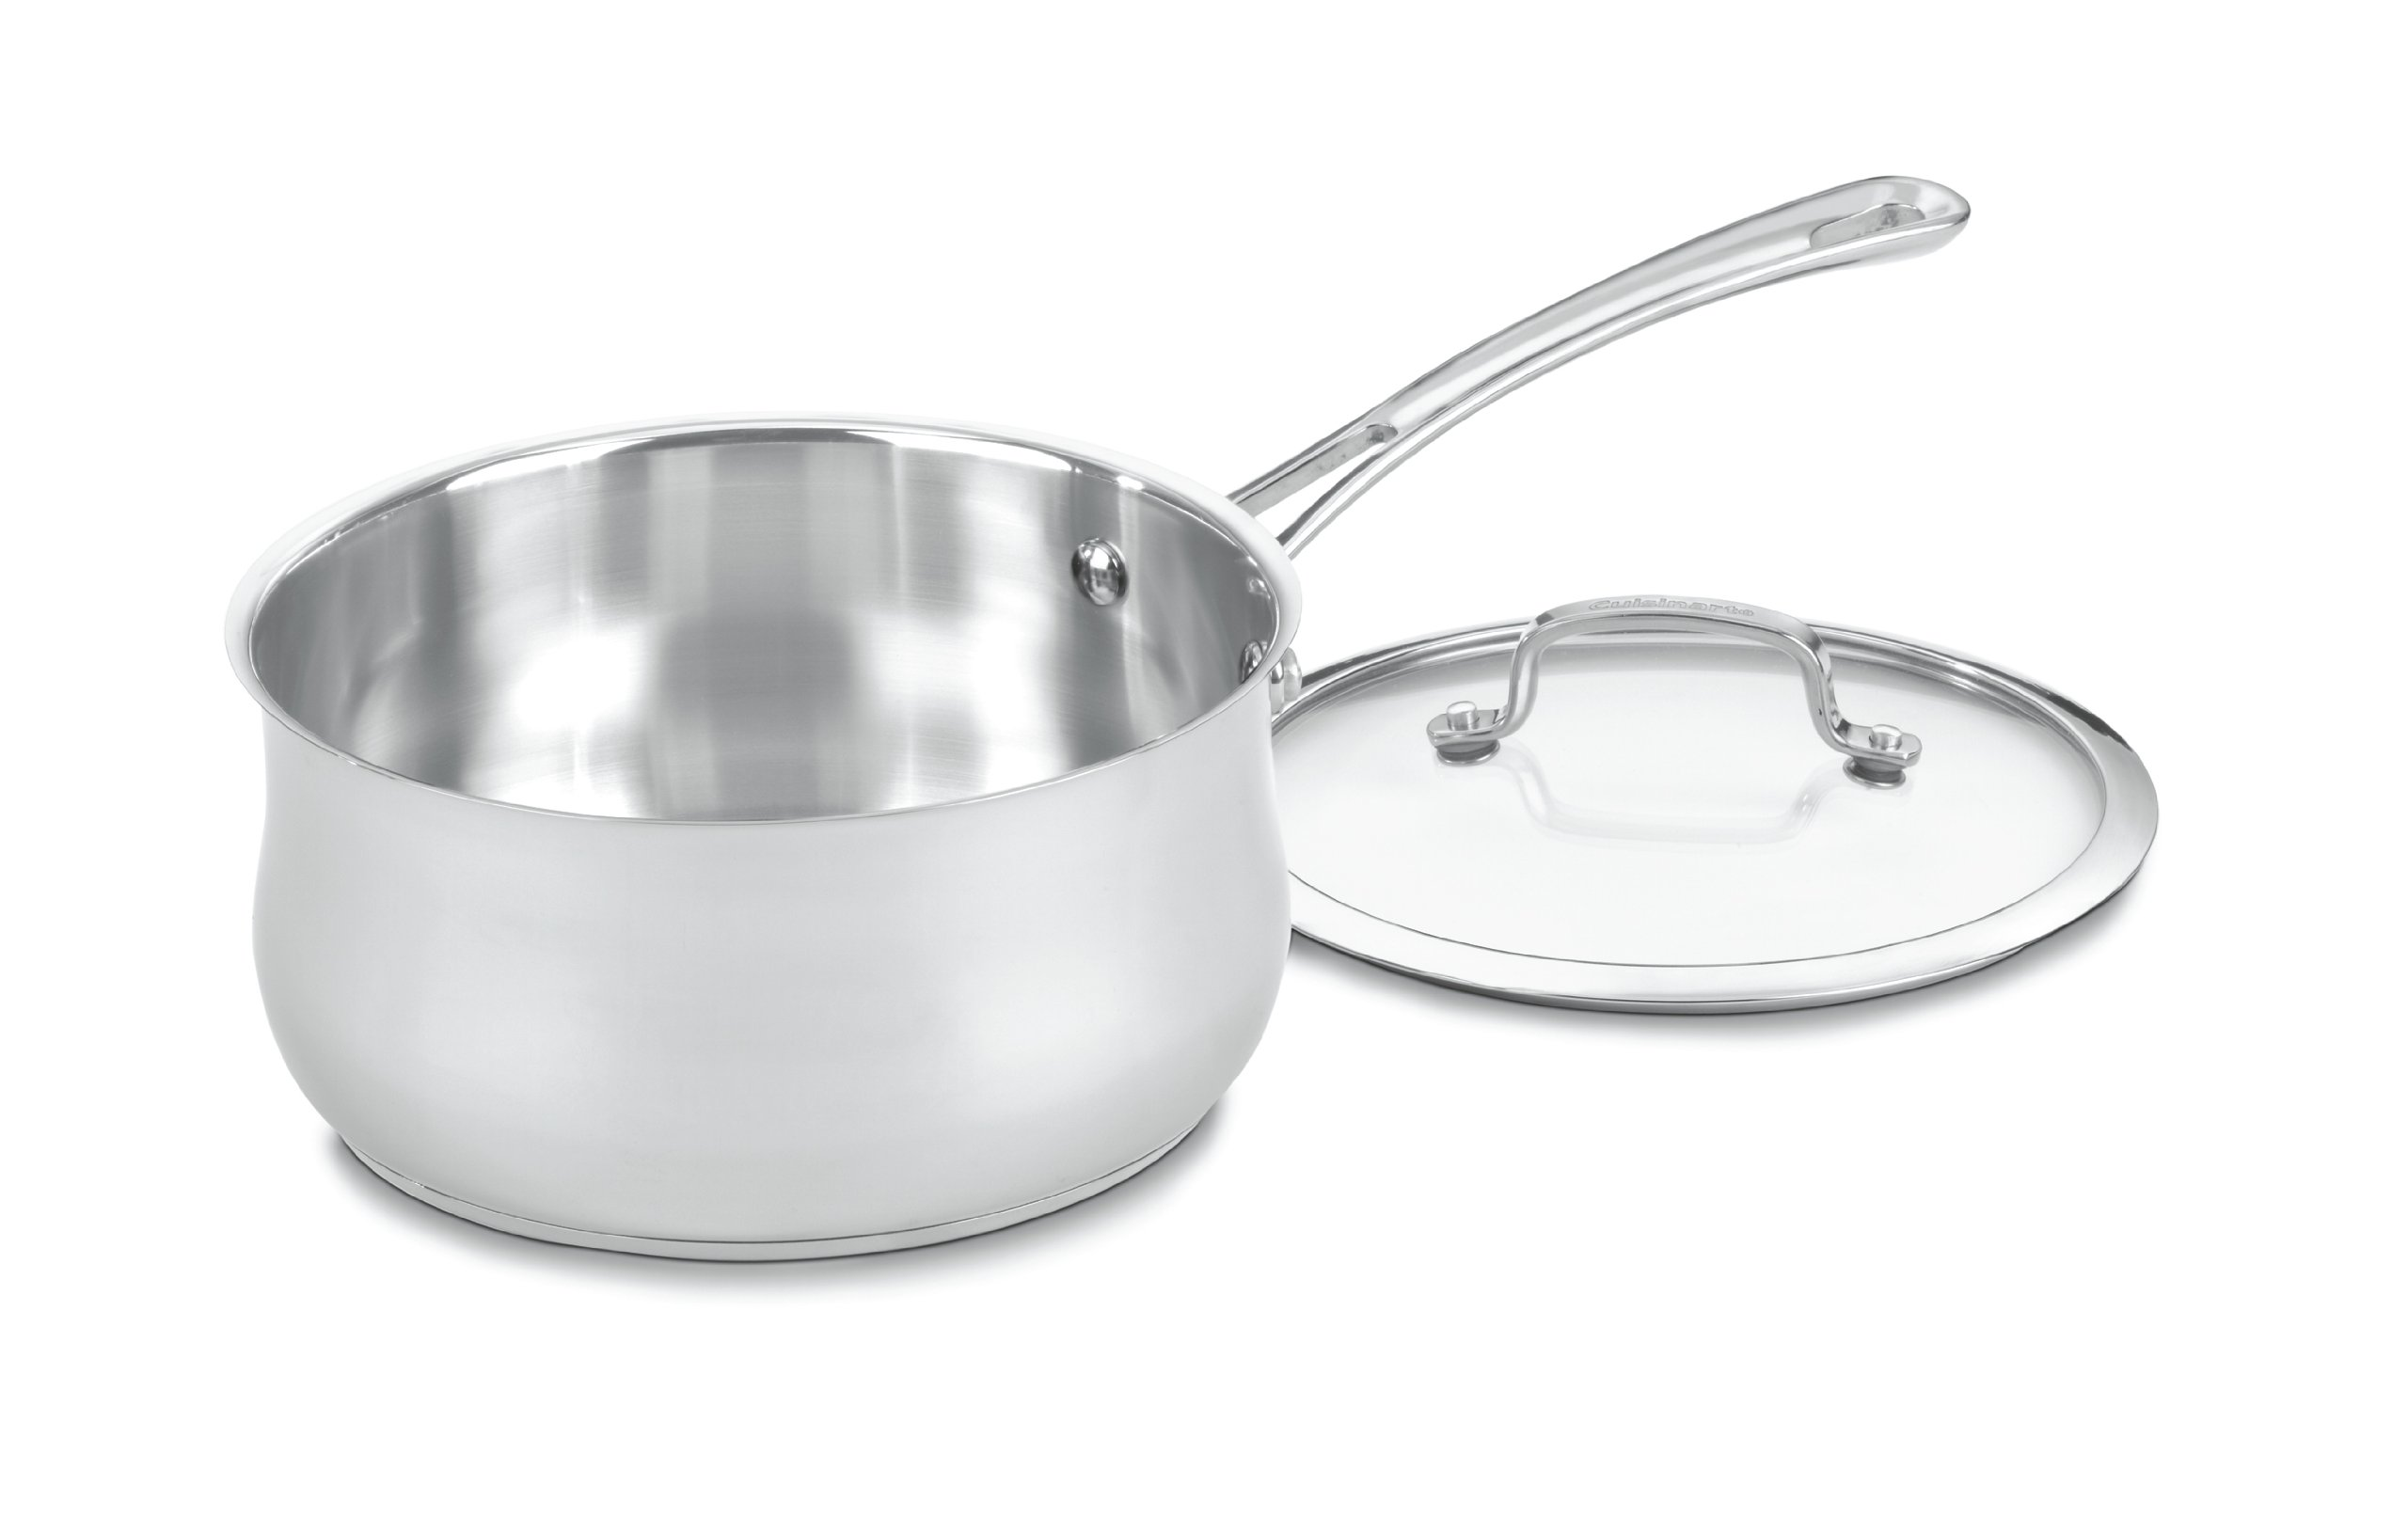 Cuisinart 4193-20 Contour Stainless 3-Quart Saucepan with Glass Cover